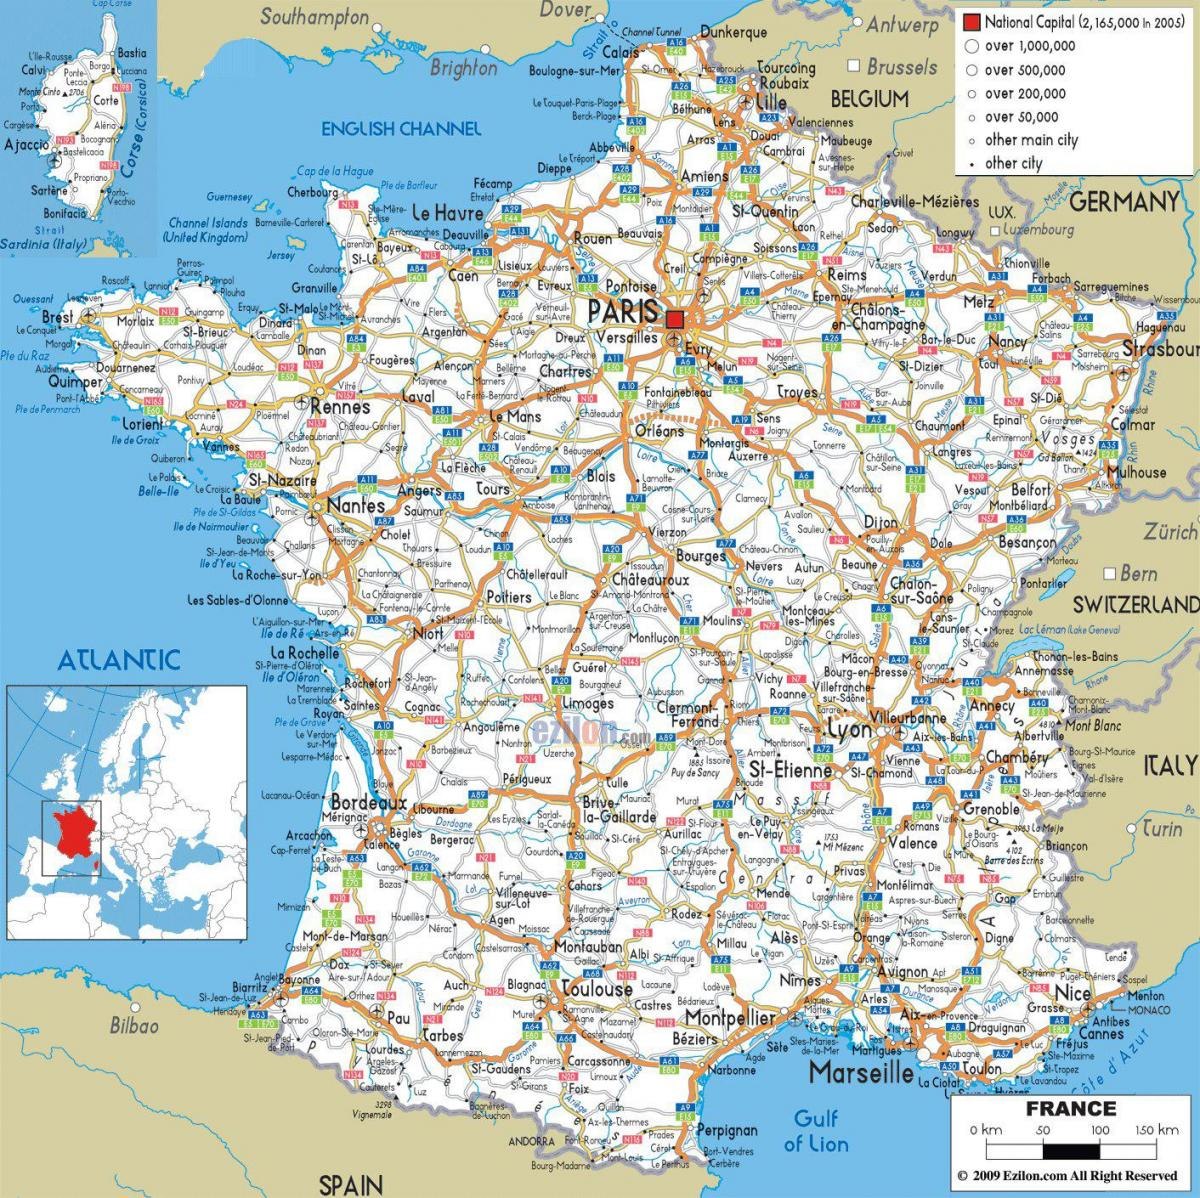 detailed road map of France